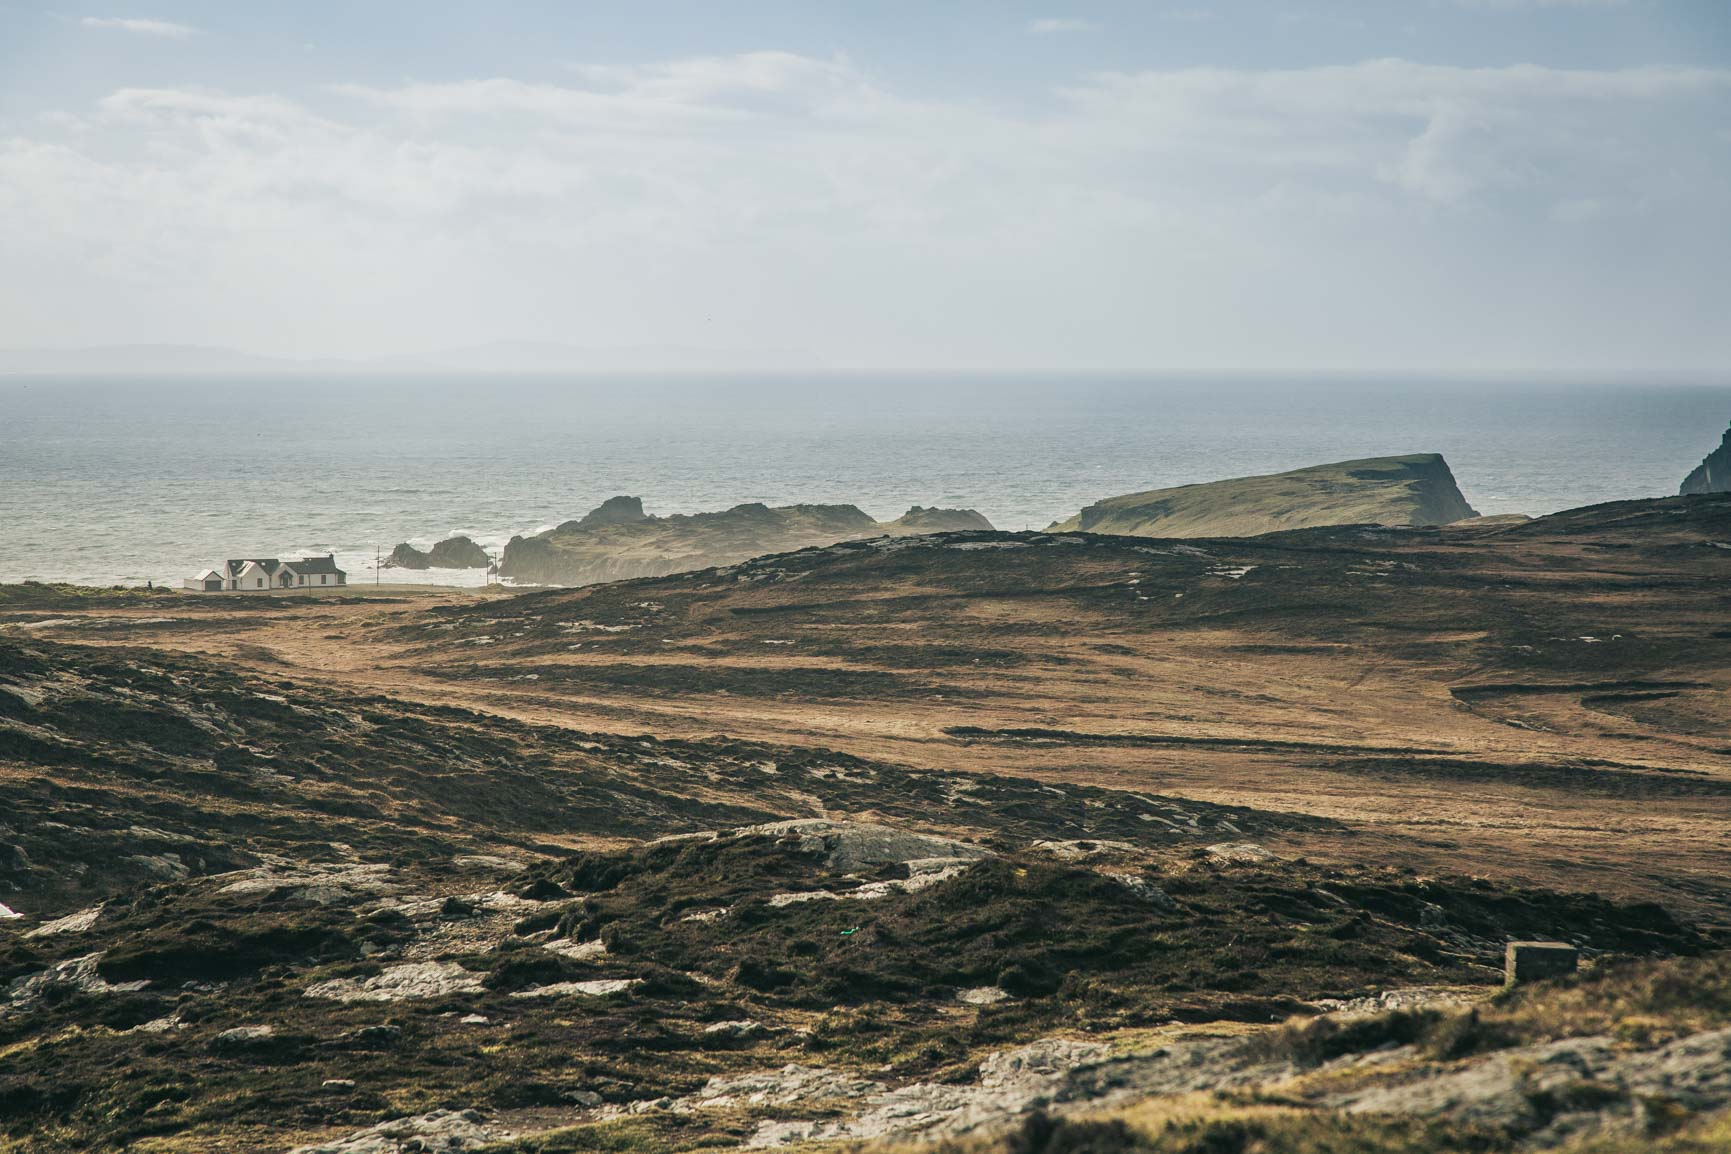 Malin Head, Donegal